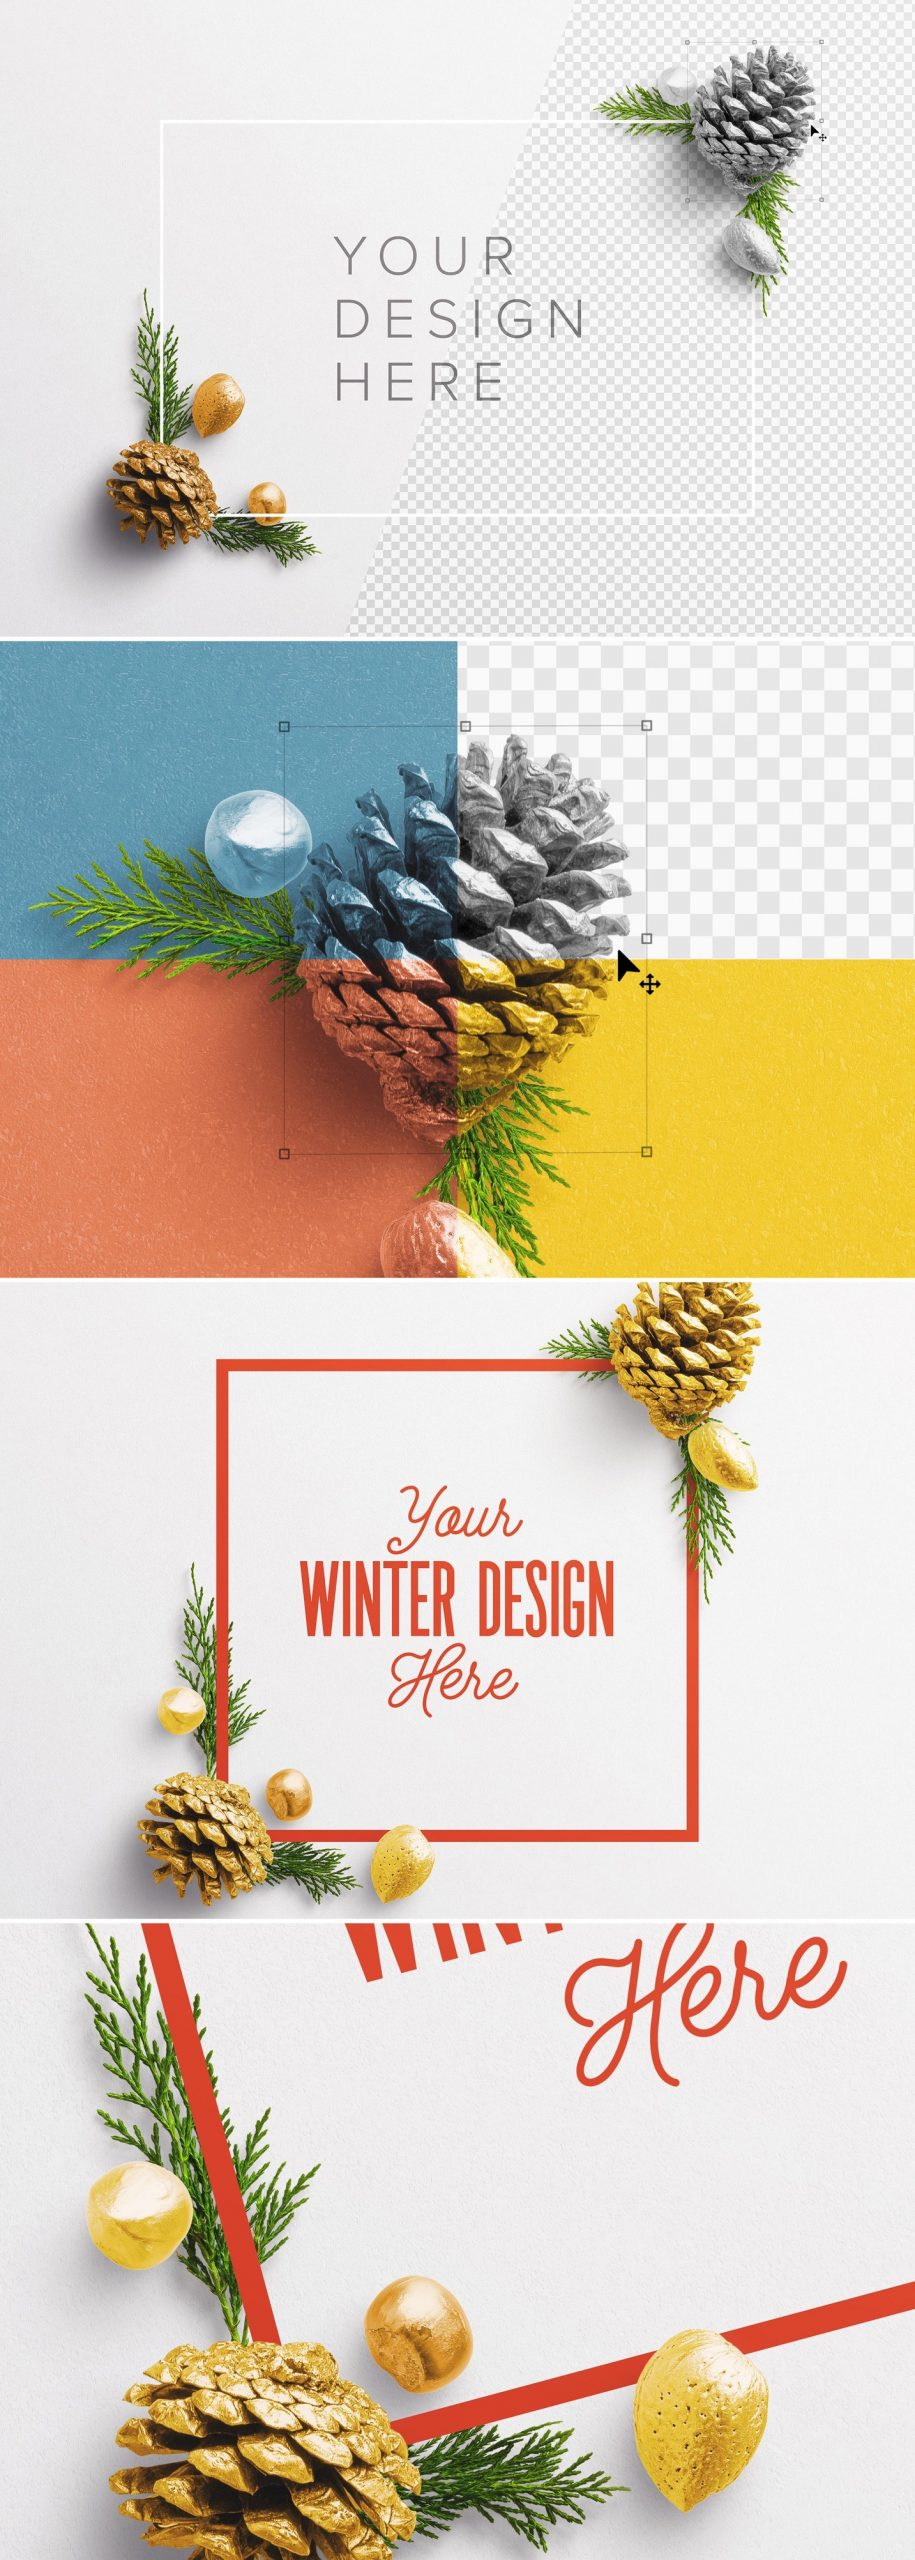 winter frame nature mockup 2 preview1 1 scaled